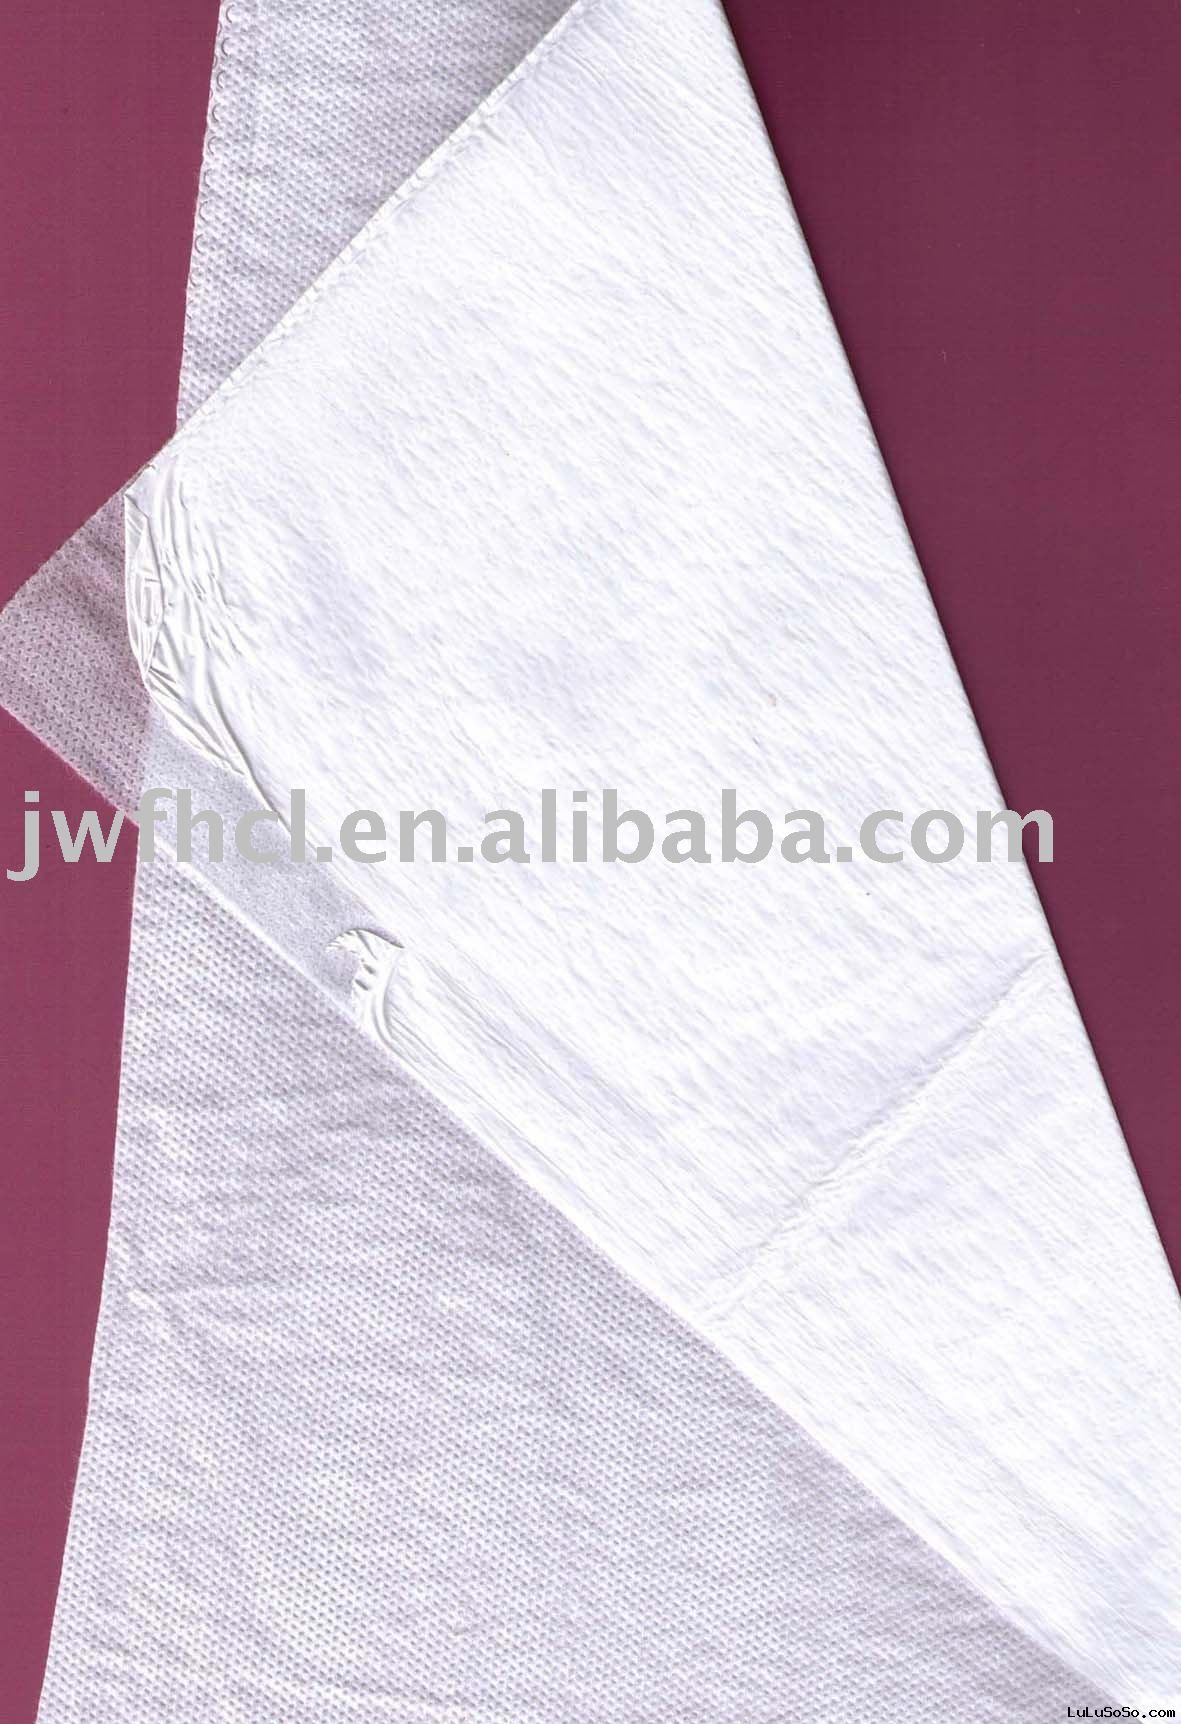 PE breathable film laminated with PP nonwoven fabric,waterproof and breathable membrane